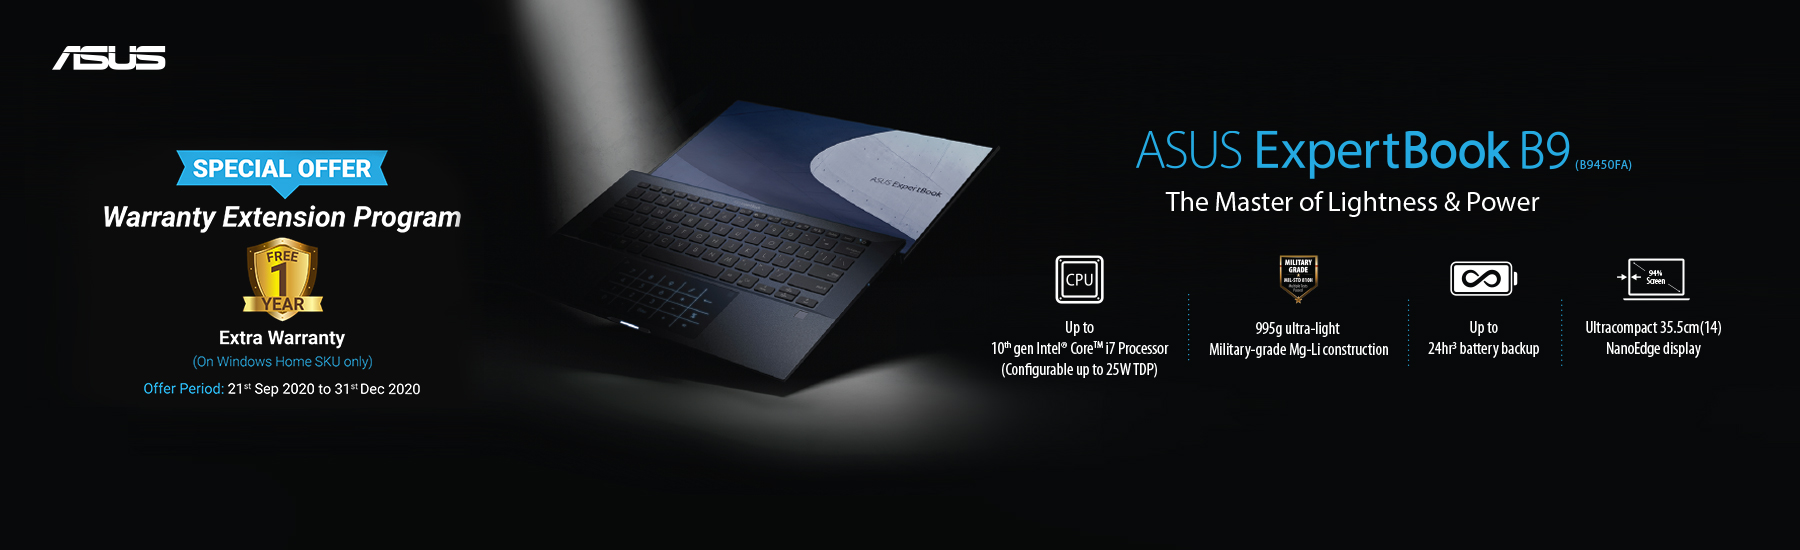 Asus Diwali Cracker Offer